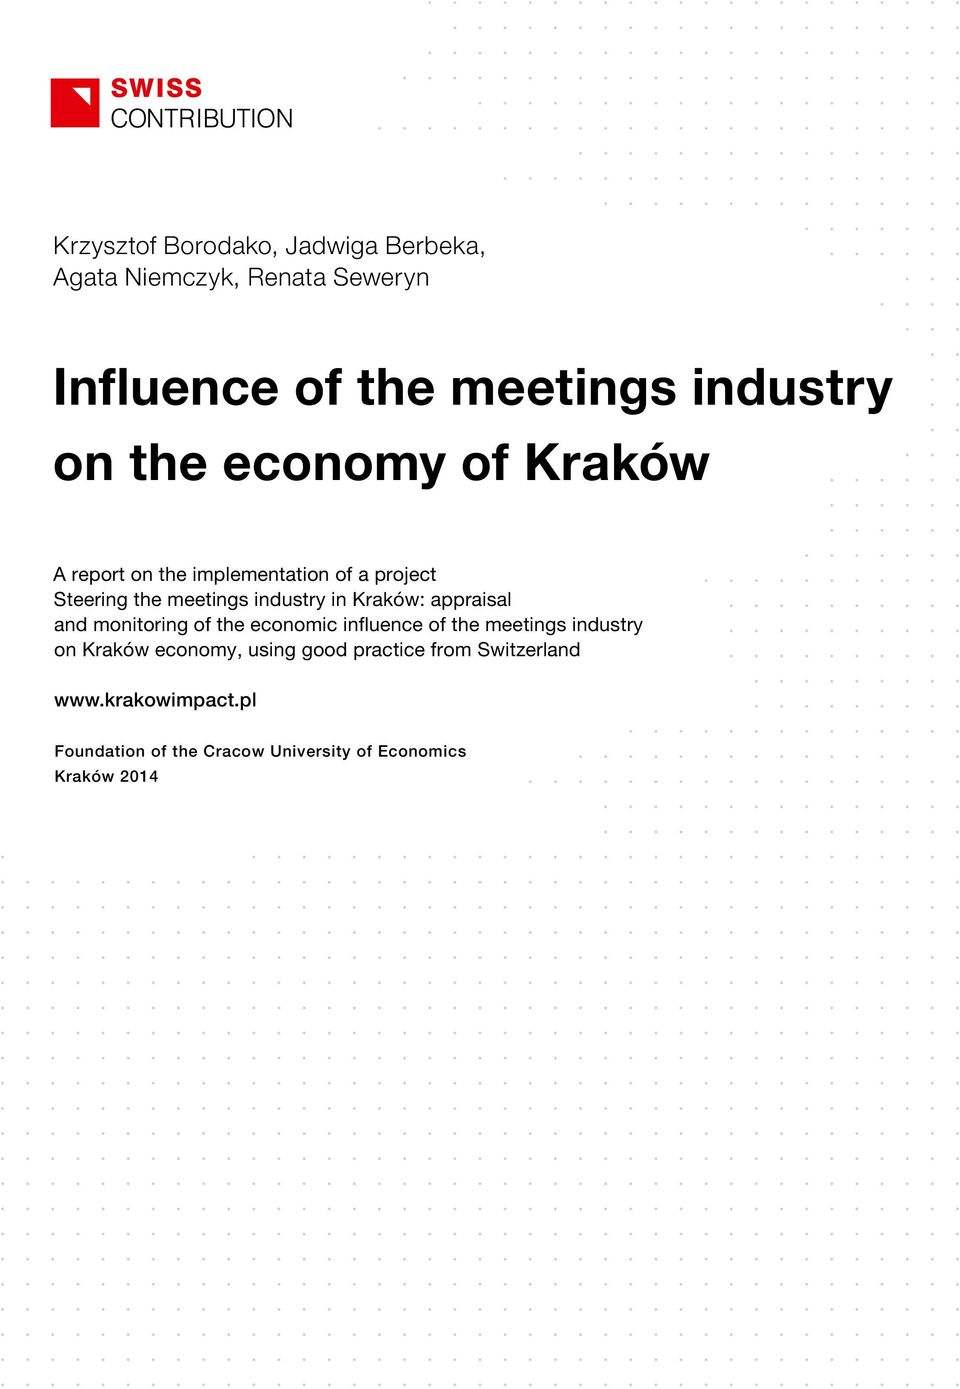 Kraków: appraisal and monitoring of the economic influence of the meetings industry on Kraków economy,